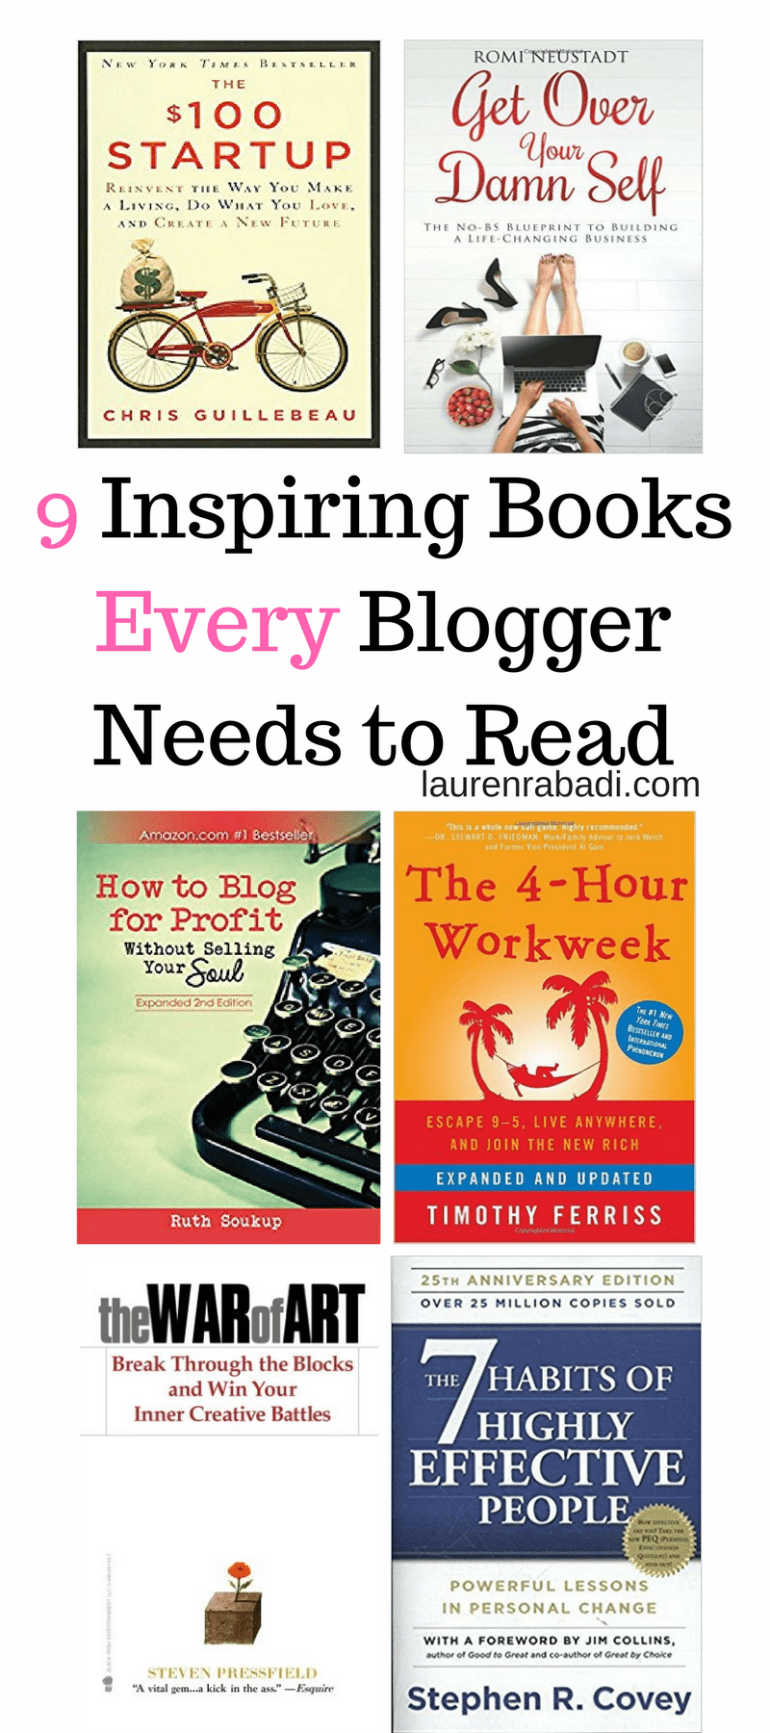 9 Inspiring Books Every Blogger Needs to Read.png